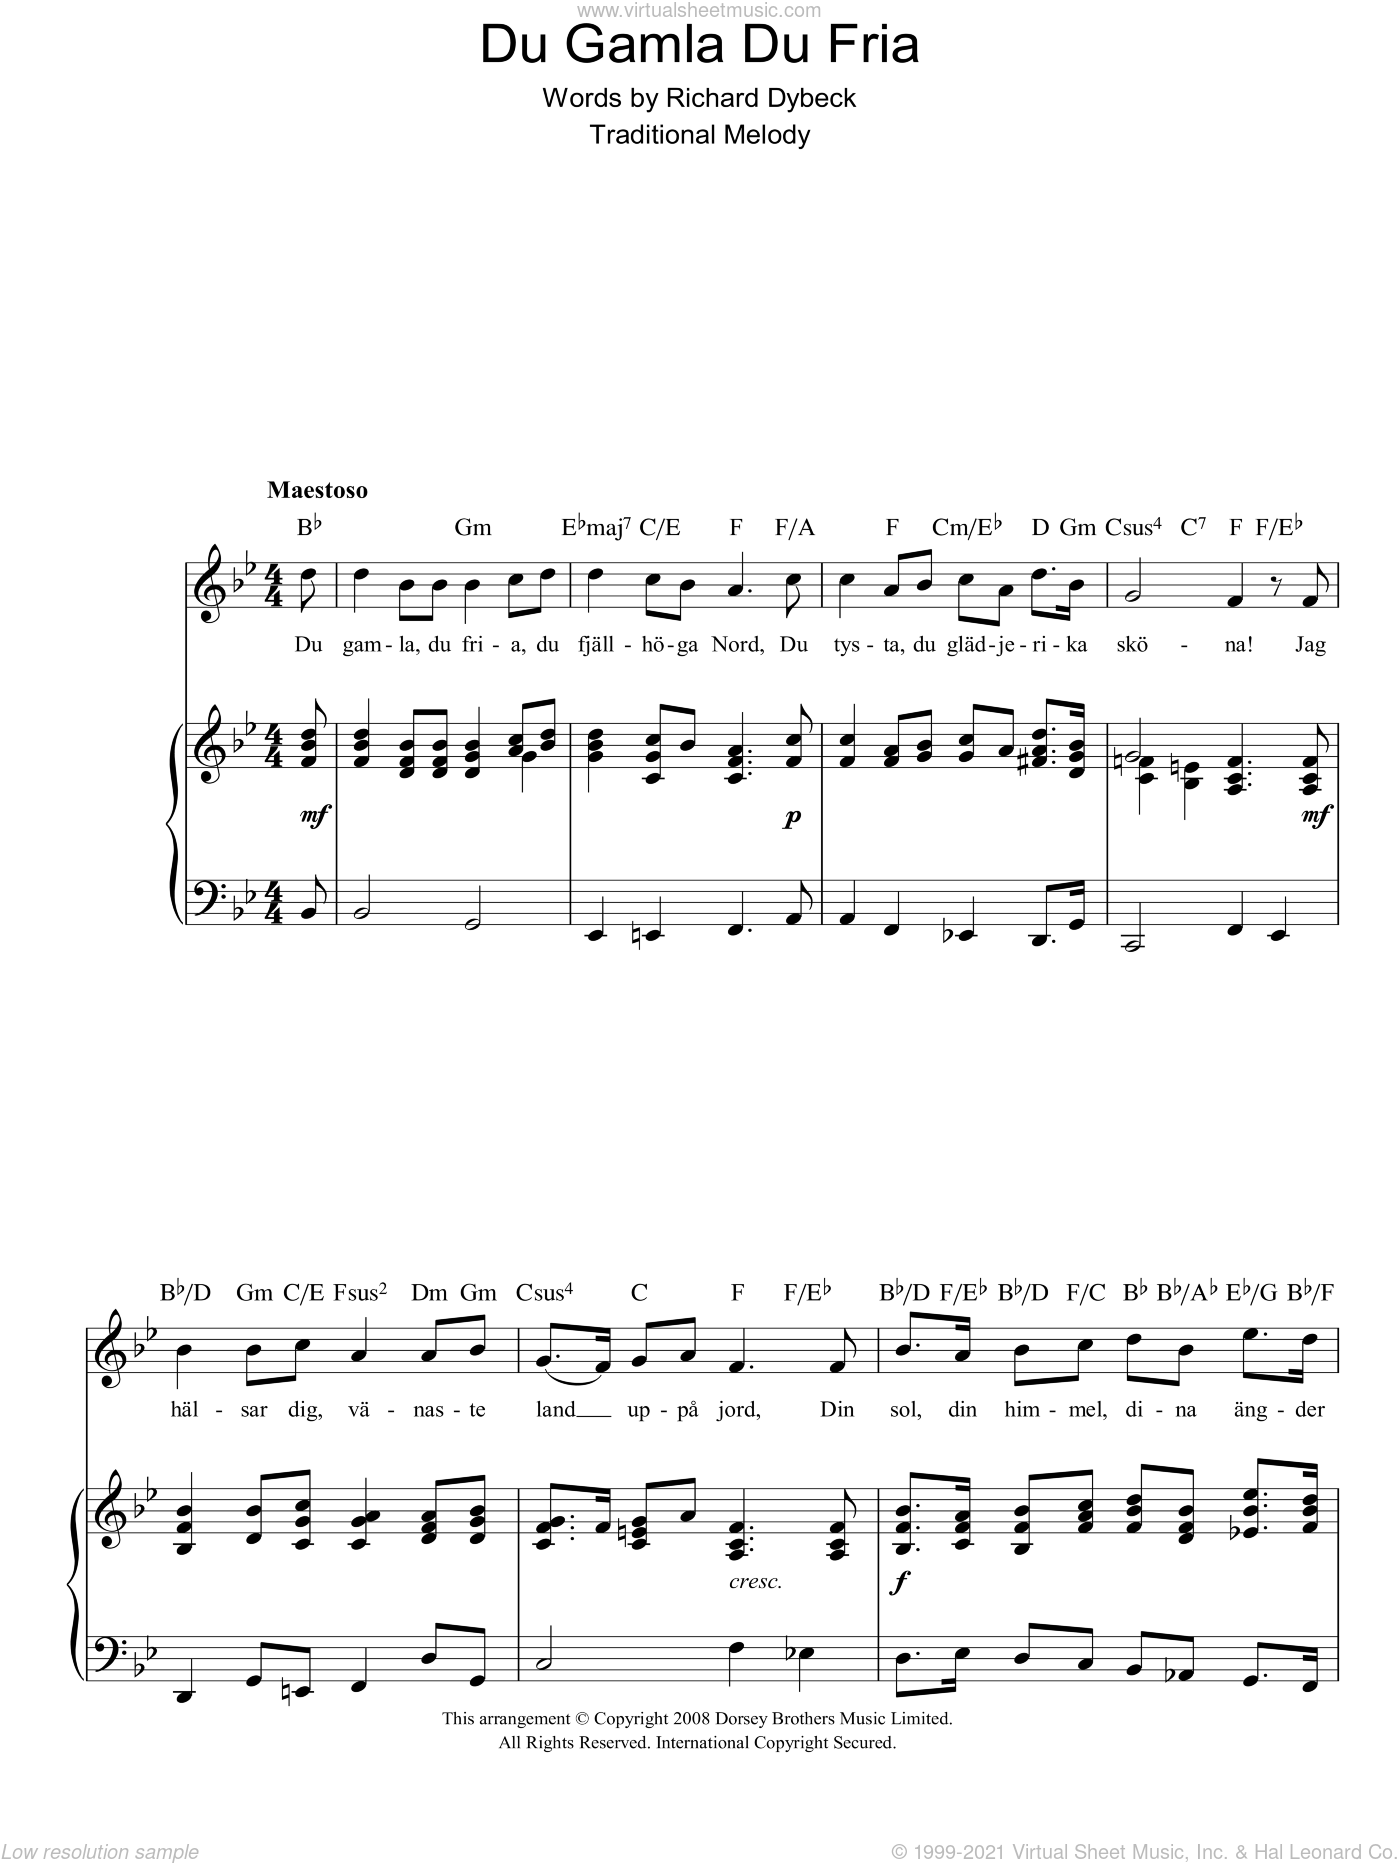 Du Gamla Du Fria (Swedish National Anthem) sheet music for voice, piano or guitar by Richard Dybeck and Miscellaneous. Score Image Preview.